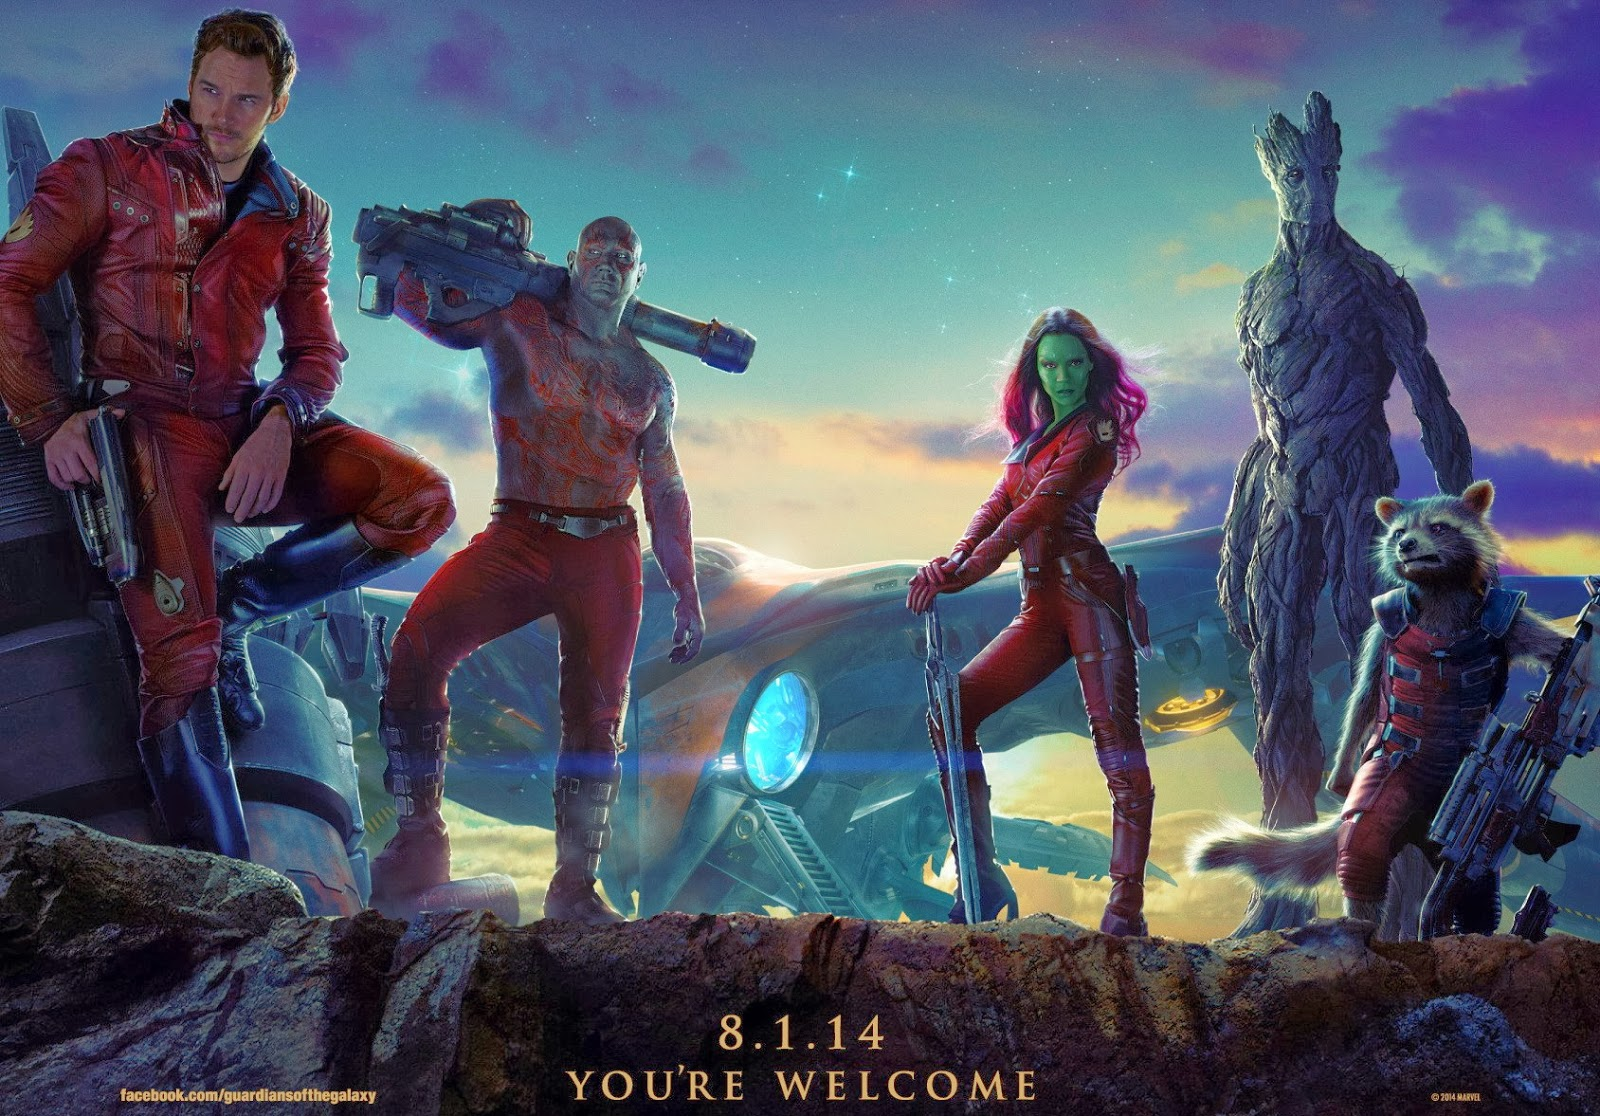 Guardians of the Galaxy: First Trailer, Poster & Teaser Clips